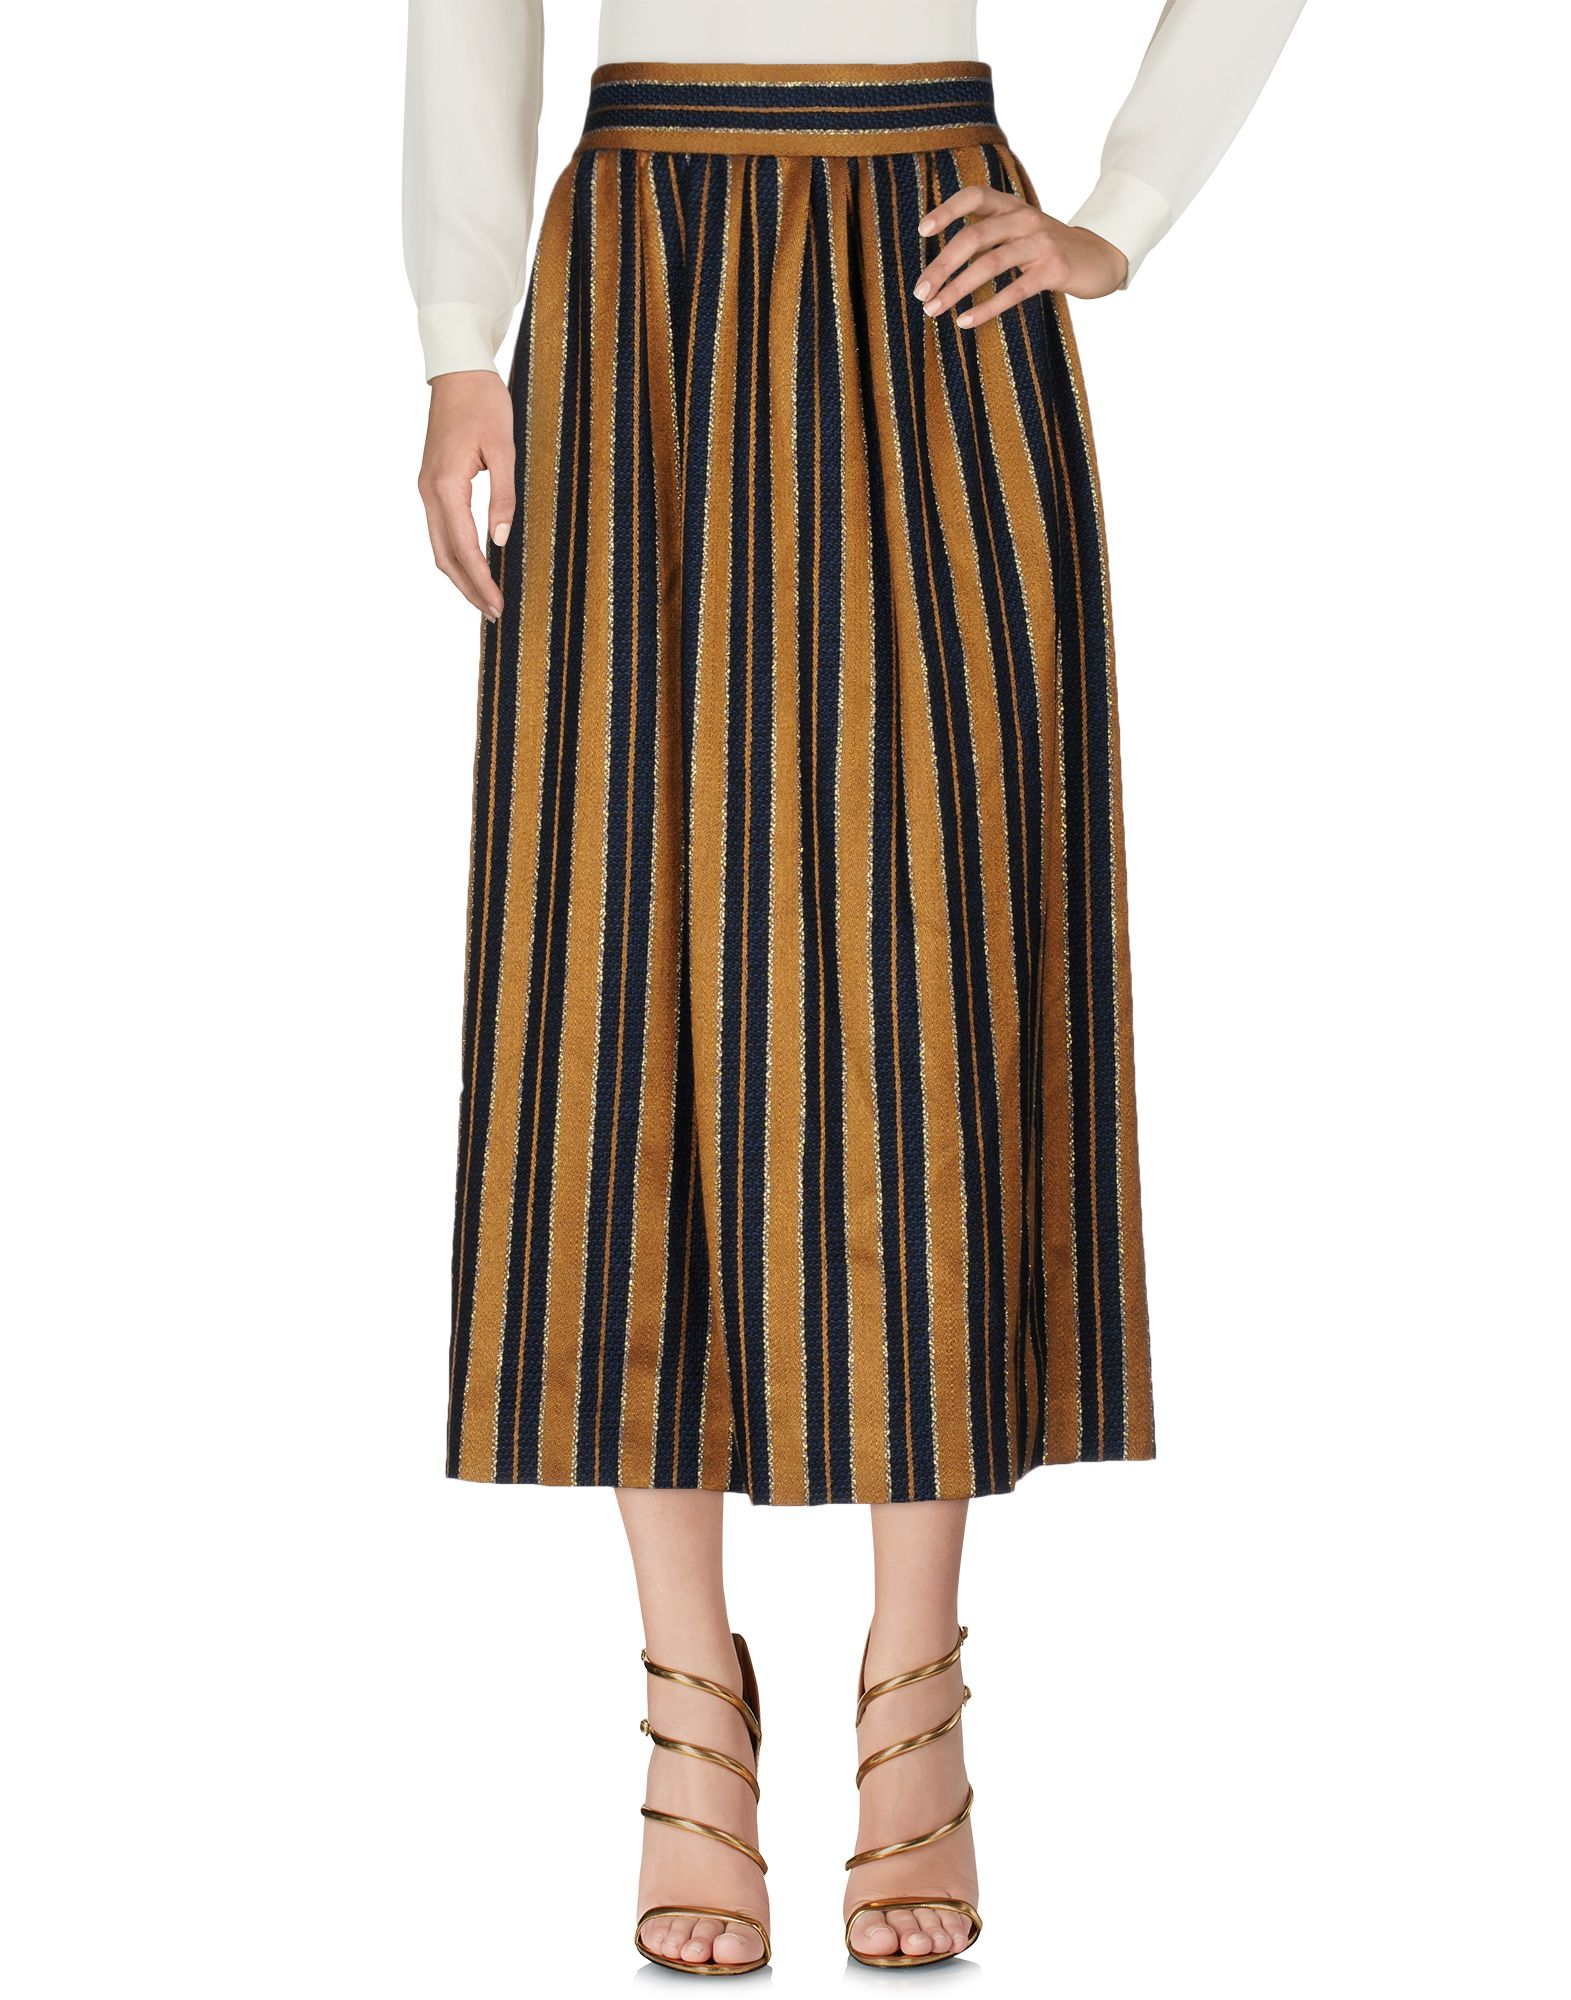 Gonna Lunga By. Bonnie Young Donna - Acquista online su diL69l